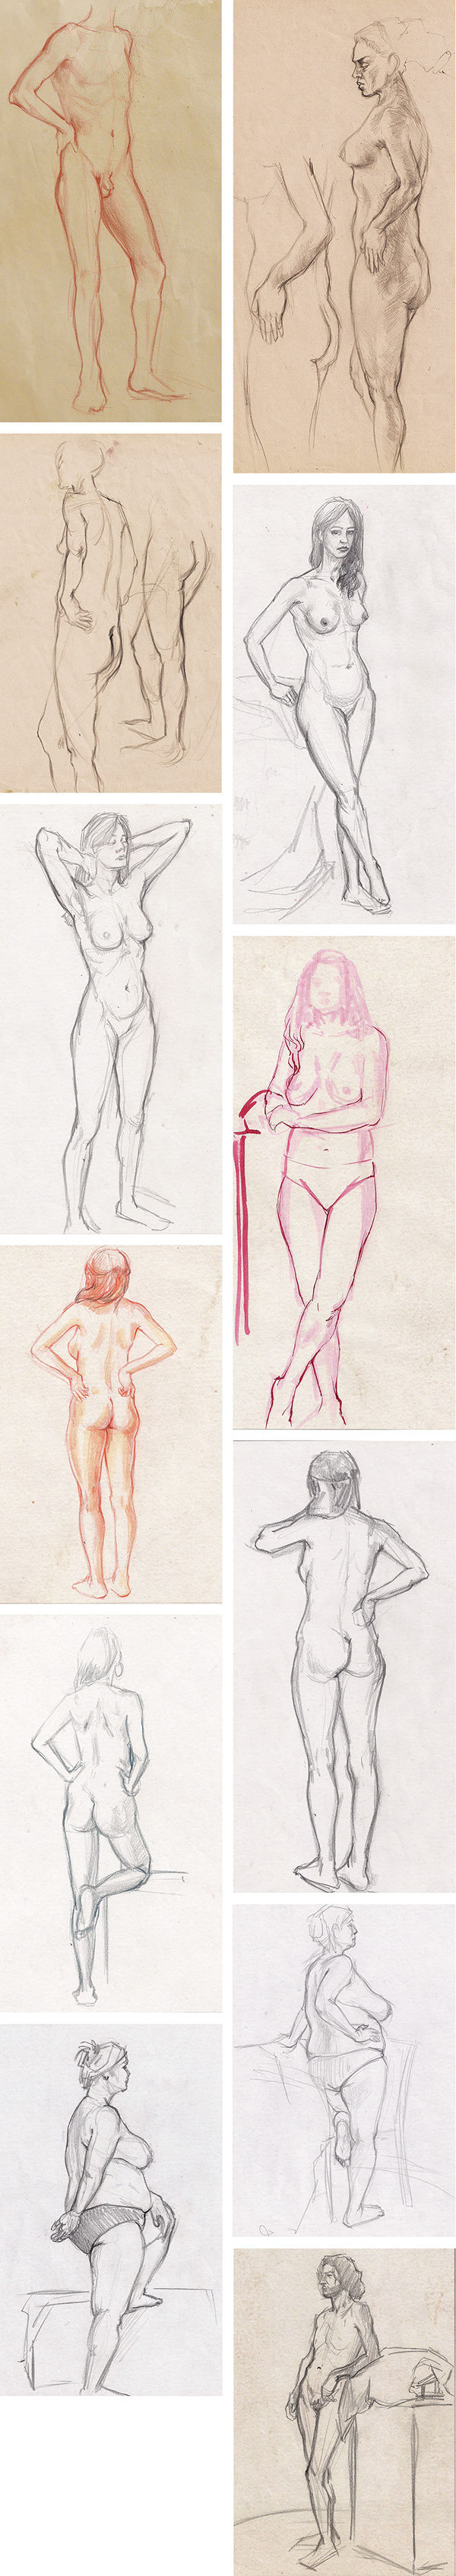 Nude sketches 2